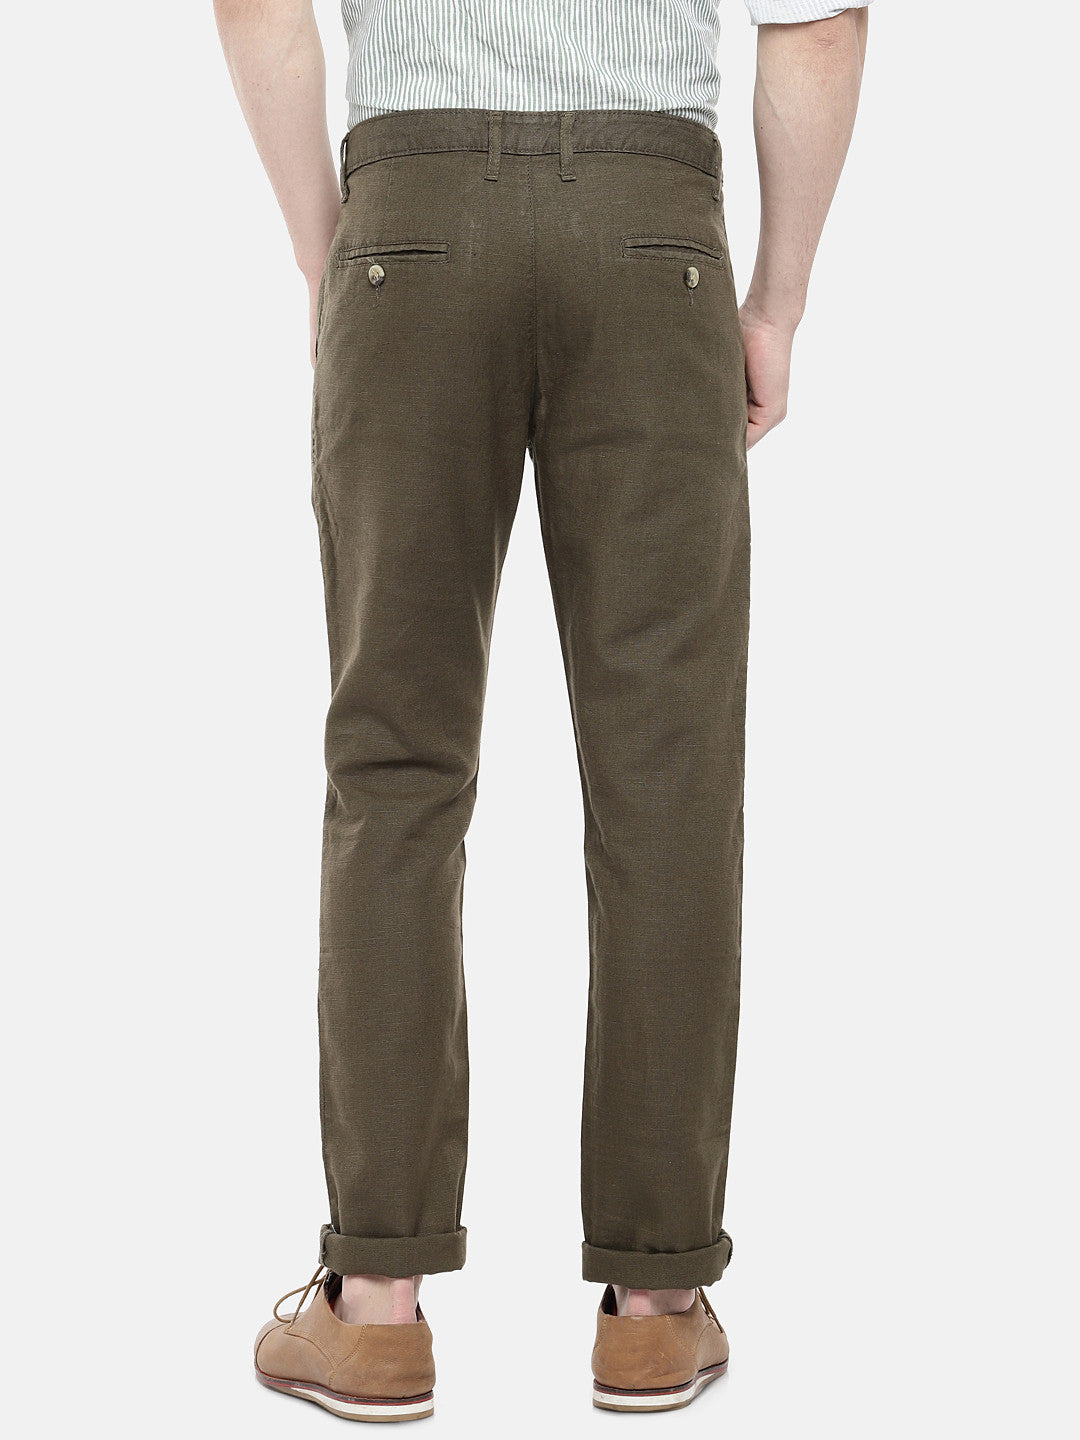 Olive Green Regular Fit Solid Regular Trousers-3